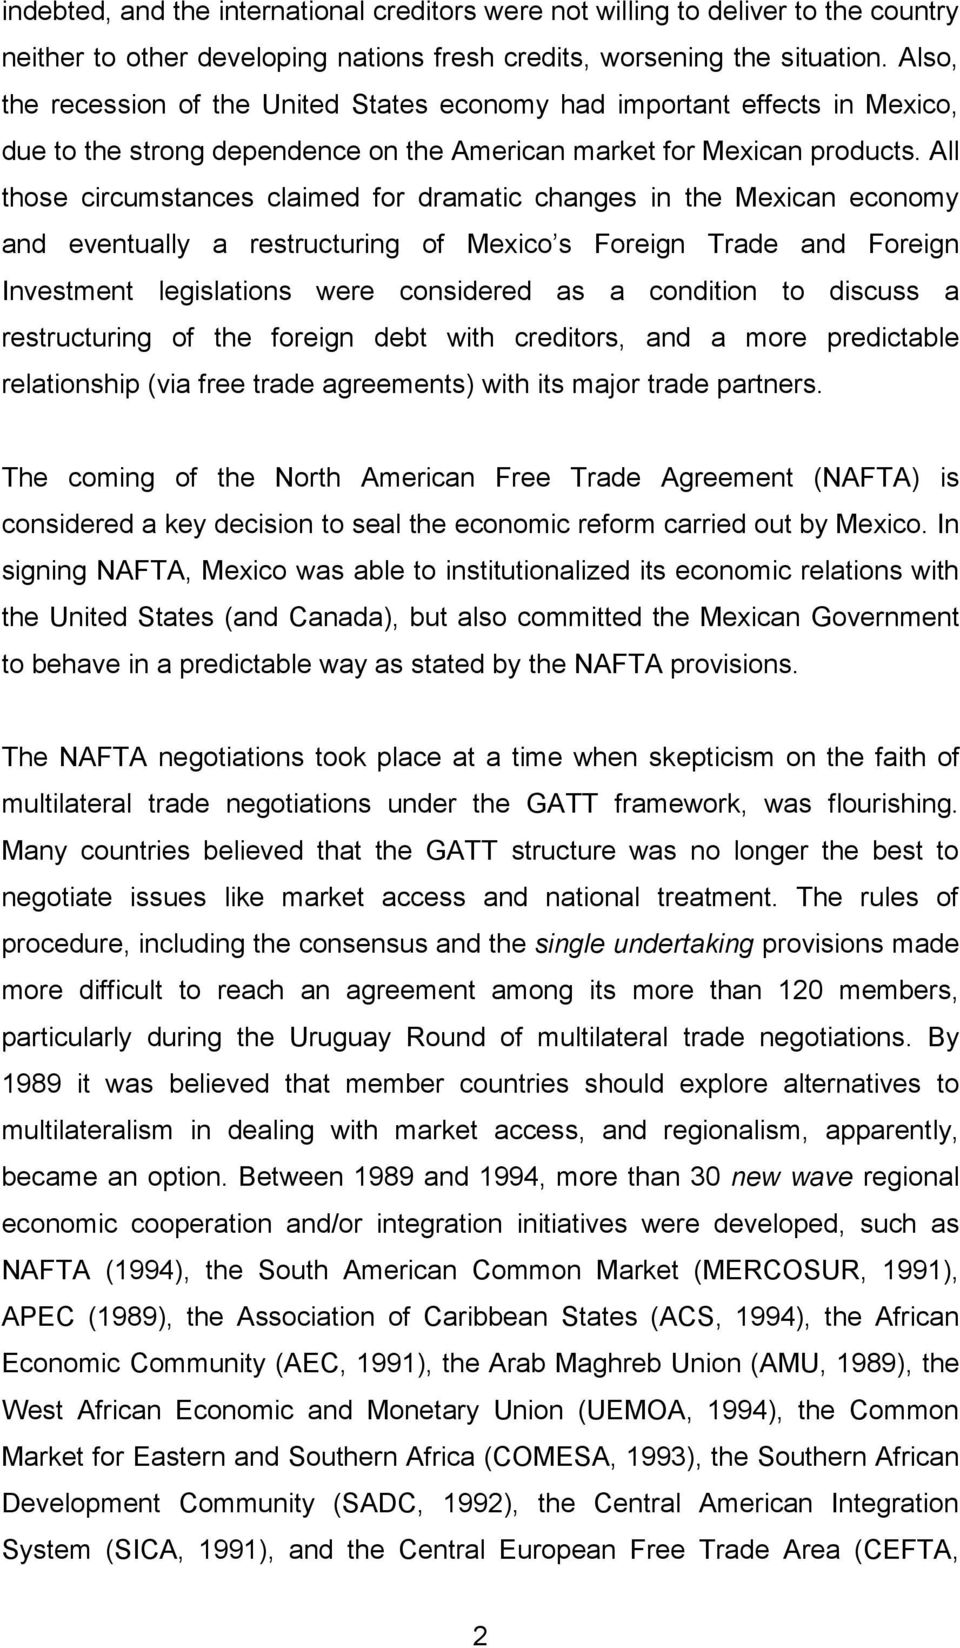 All those circumstances claimed for dramatic changes in the Mexican economy and eventually a restructuring of Mexico s Foreign Trade and Foreign Investment legislations were considered as a condition